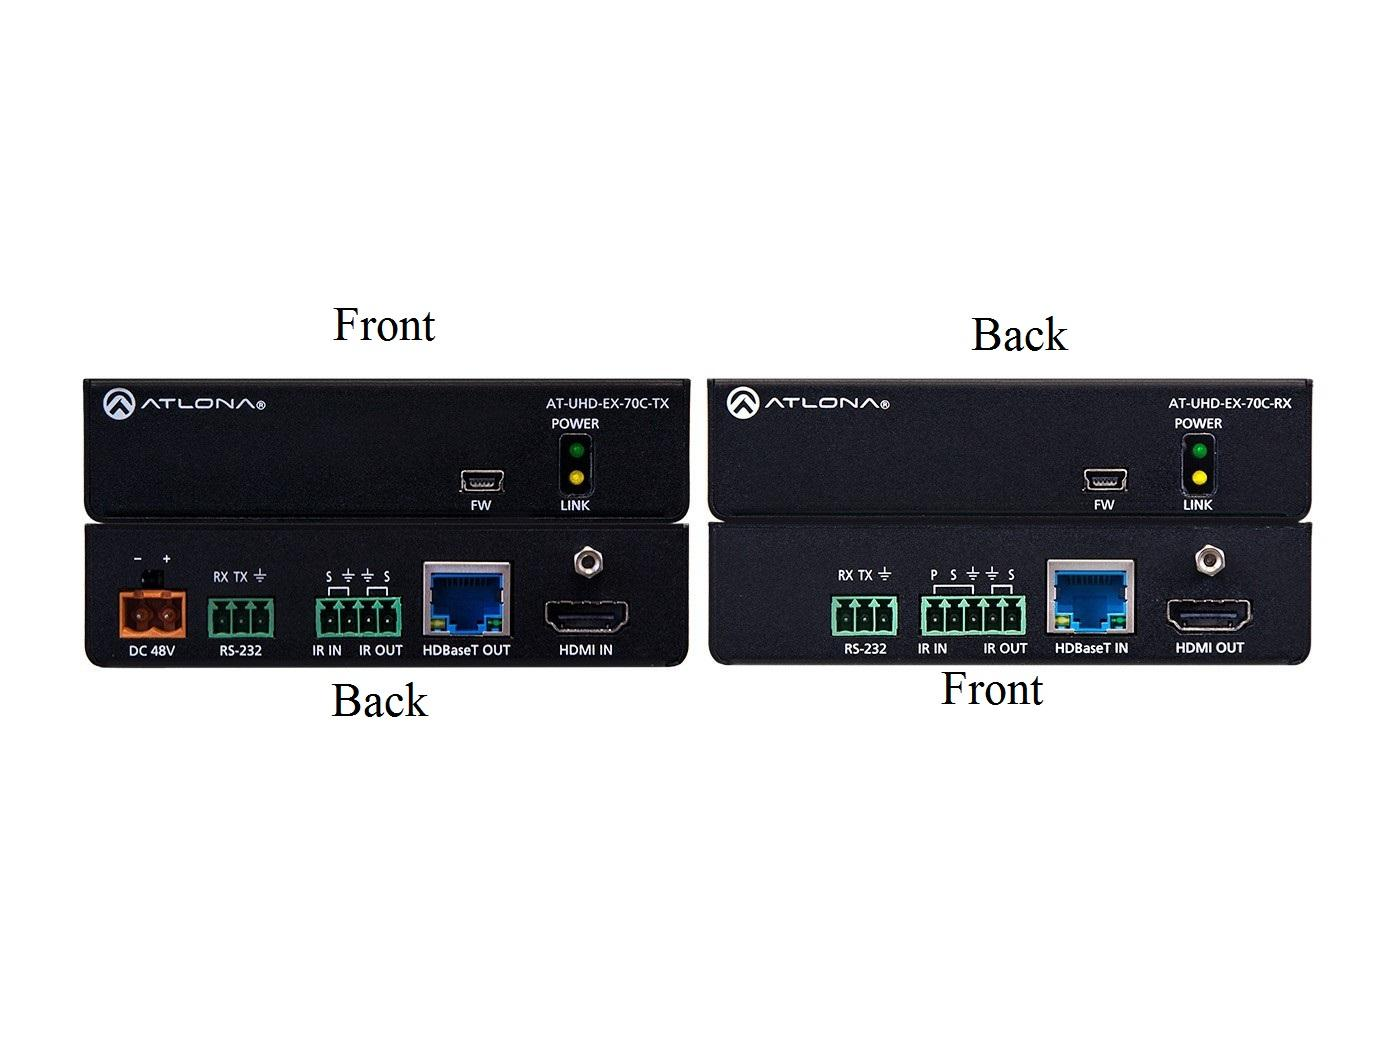 AT-UHD-EX-70C-KIT-B 4K/UHD HDMI Over HDBaseT Extender(Receiver/Transmitter) Kit with Control and PoE by Atlona